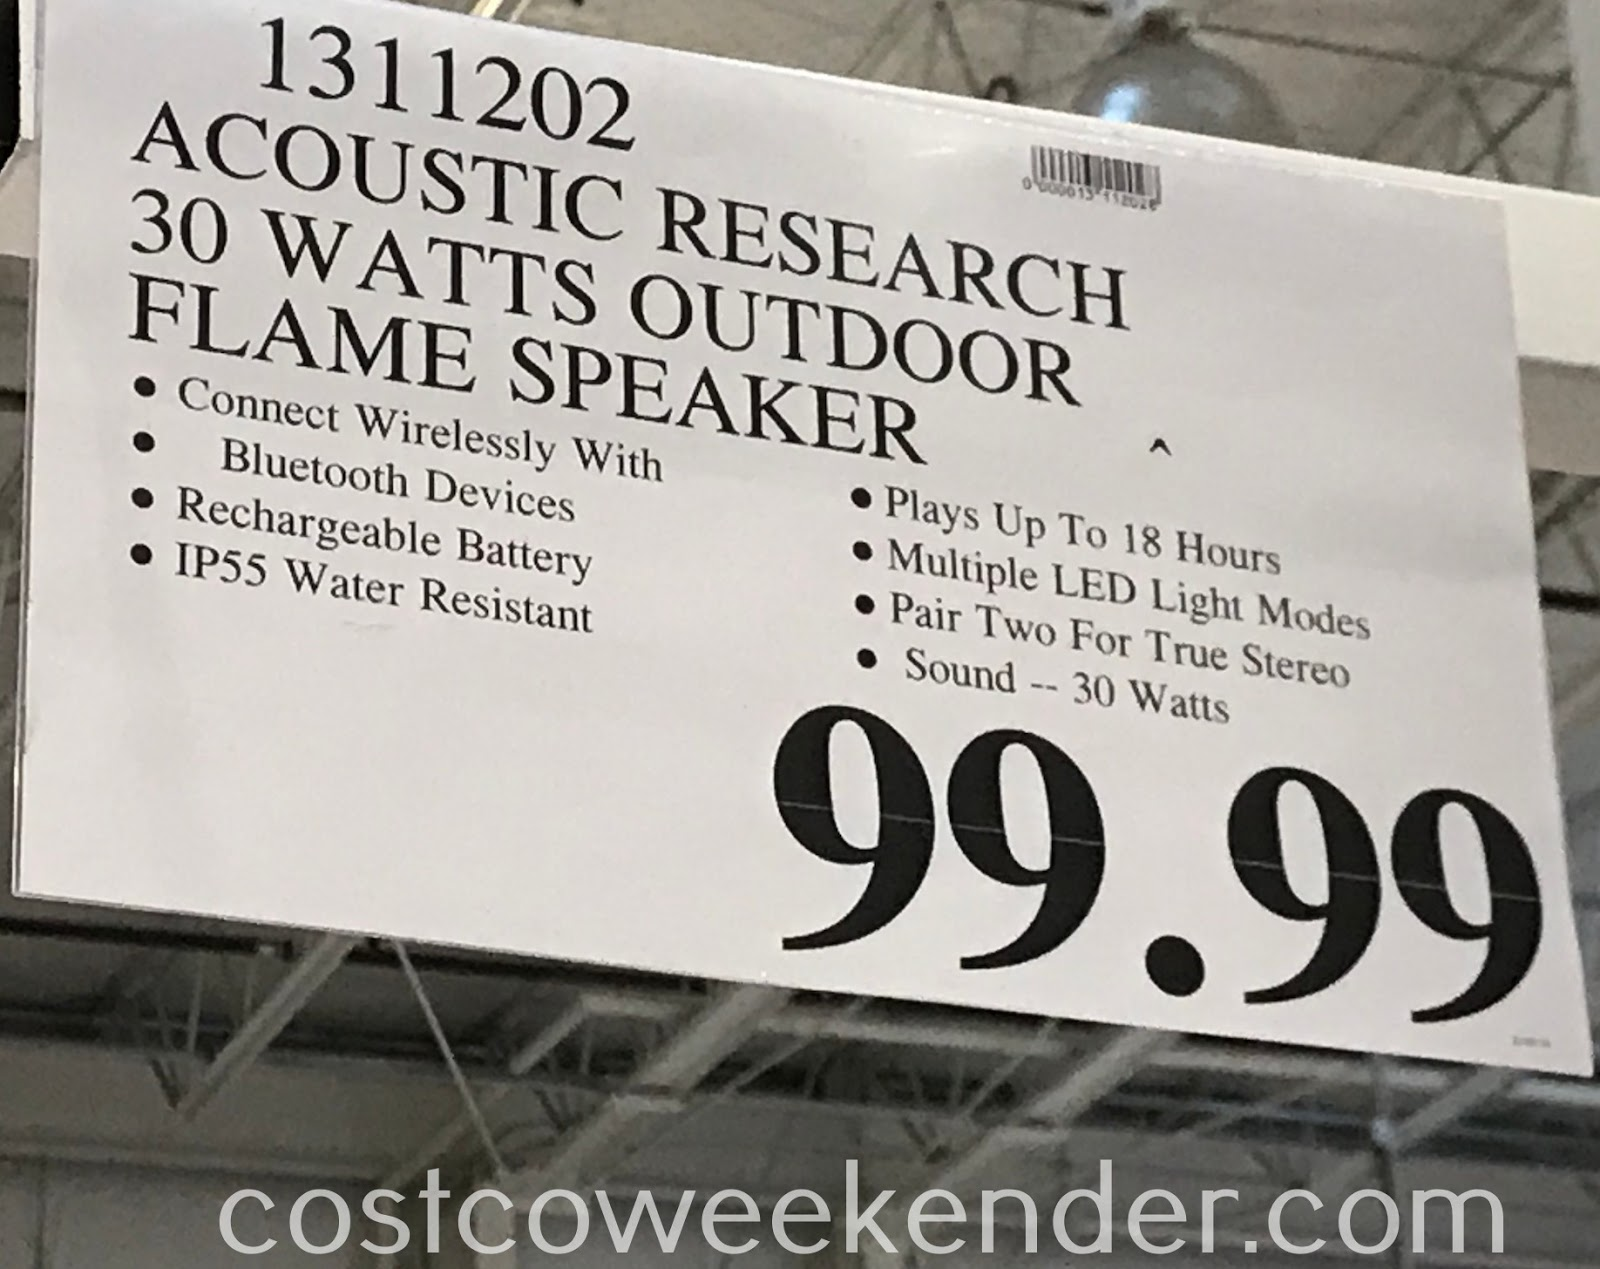 Deal for the Acoustic Research Portable Wireless Speaker with LED Flickering Flame Light at Costco